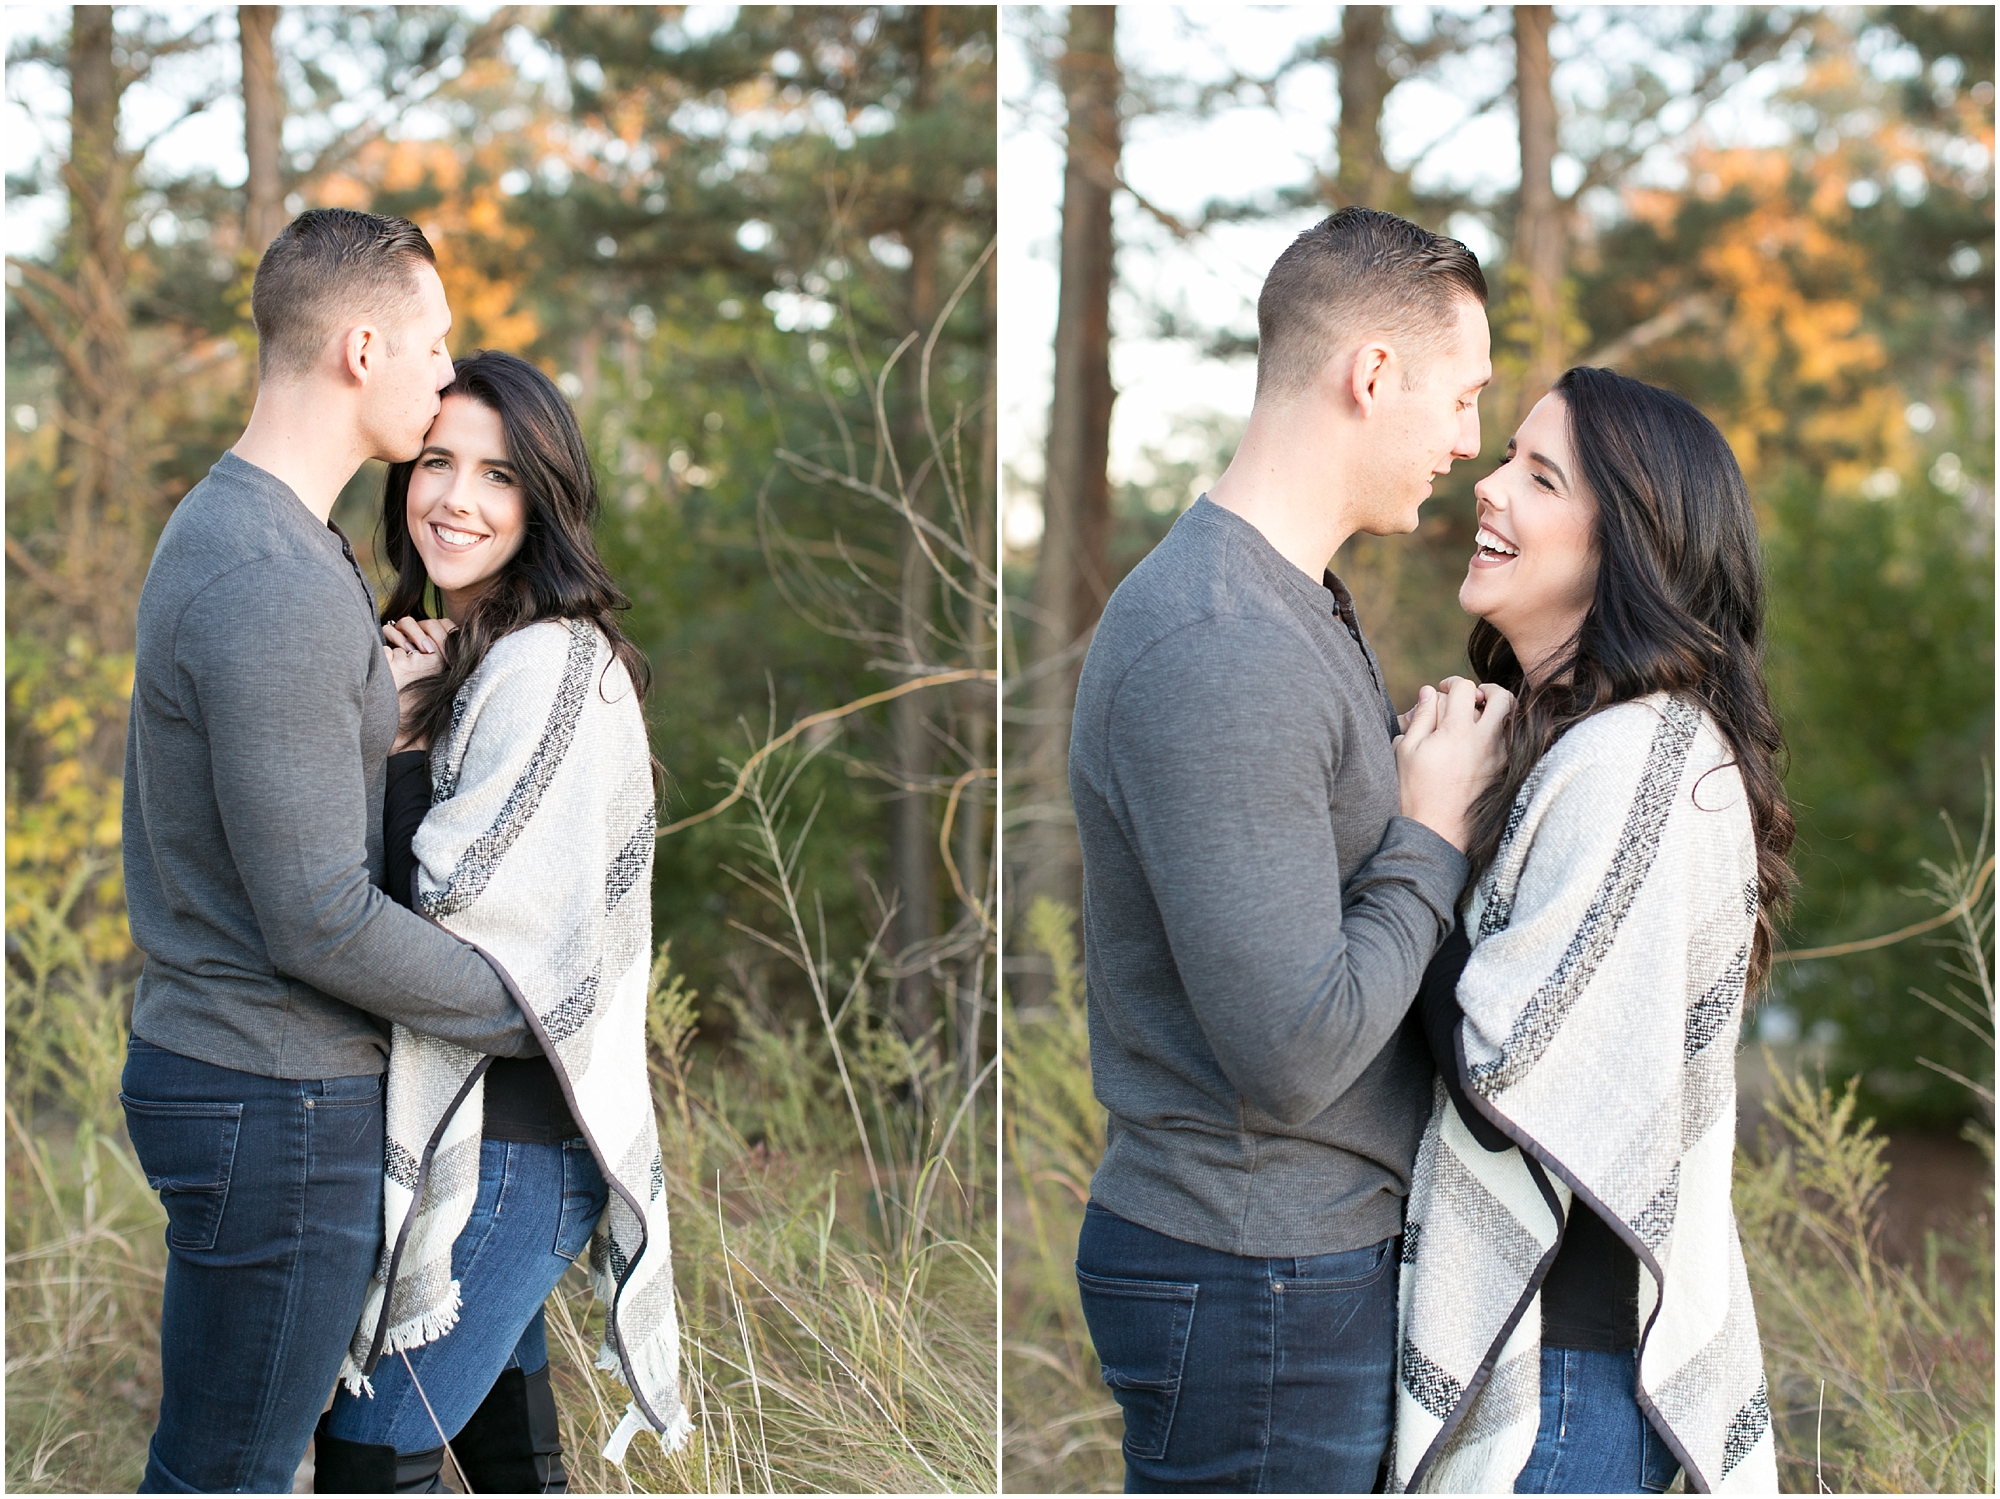 outdoorsy and adventurous couple portraits in first landing state park virginia